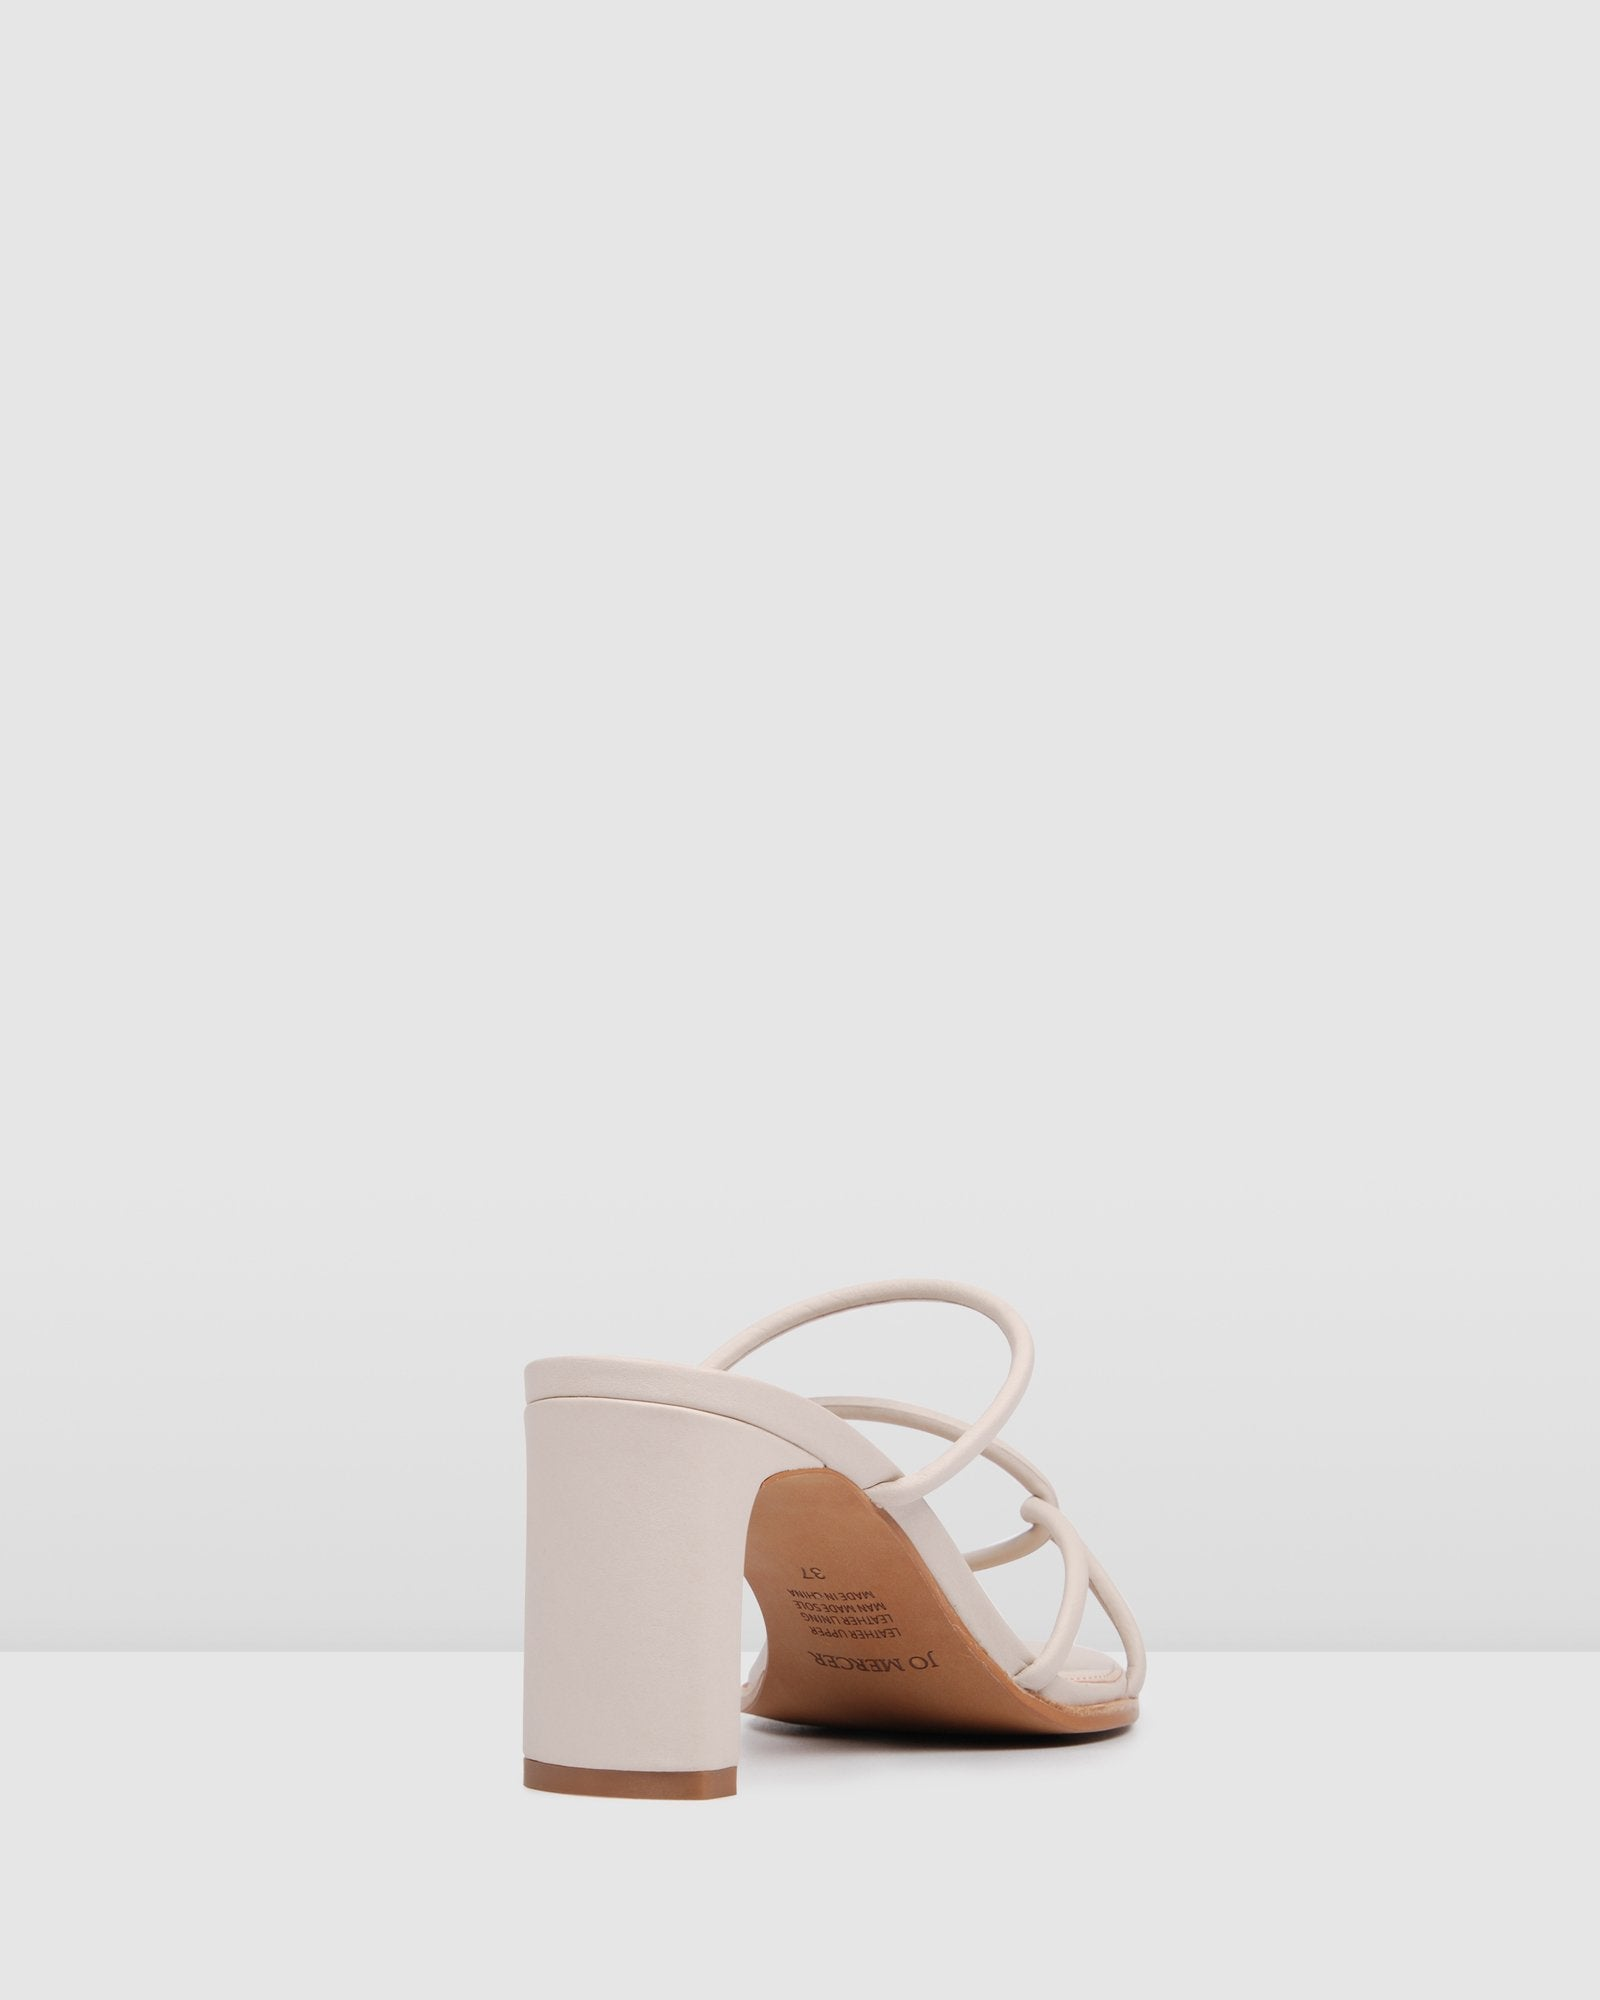 NOVI MID HEEL SANDALS BONE LEATHER